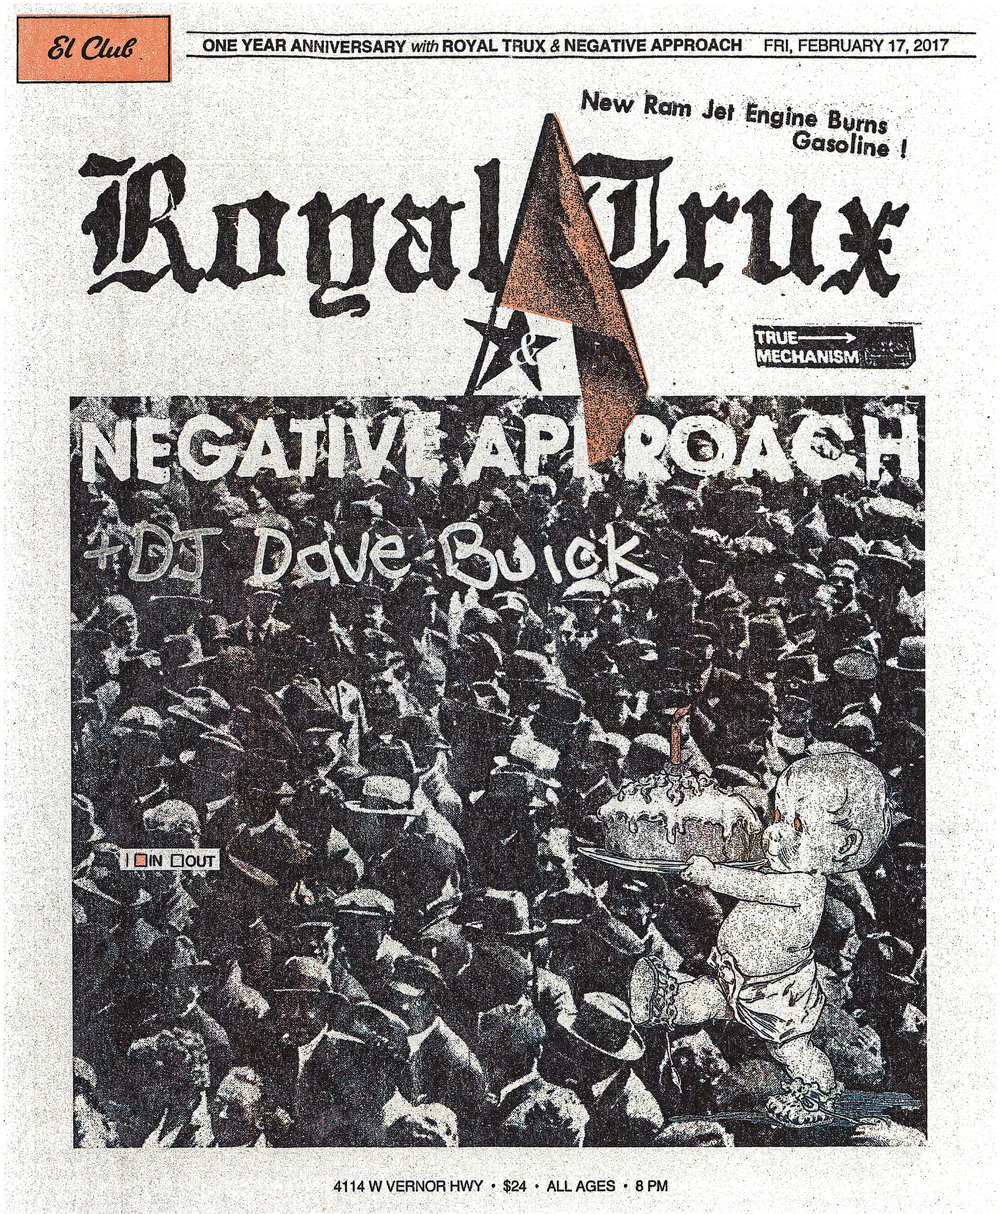 Royal-Trux-el-club-web_2500.jpg